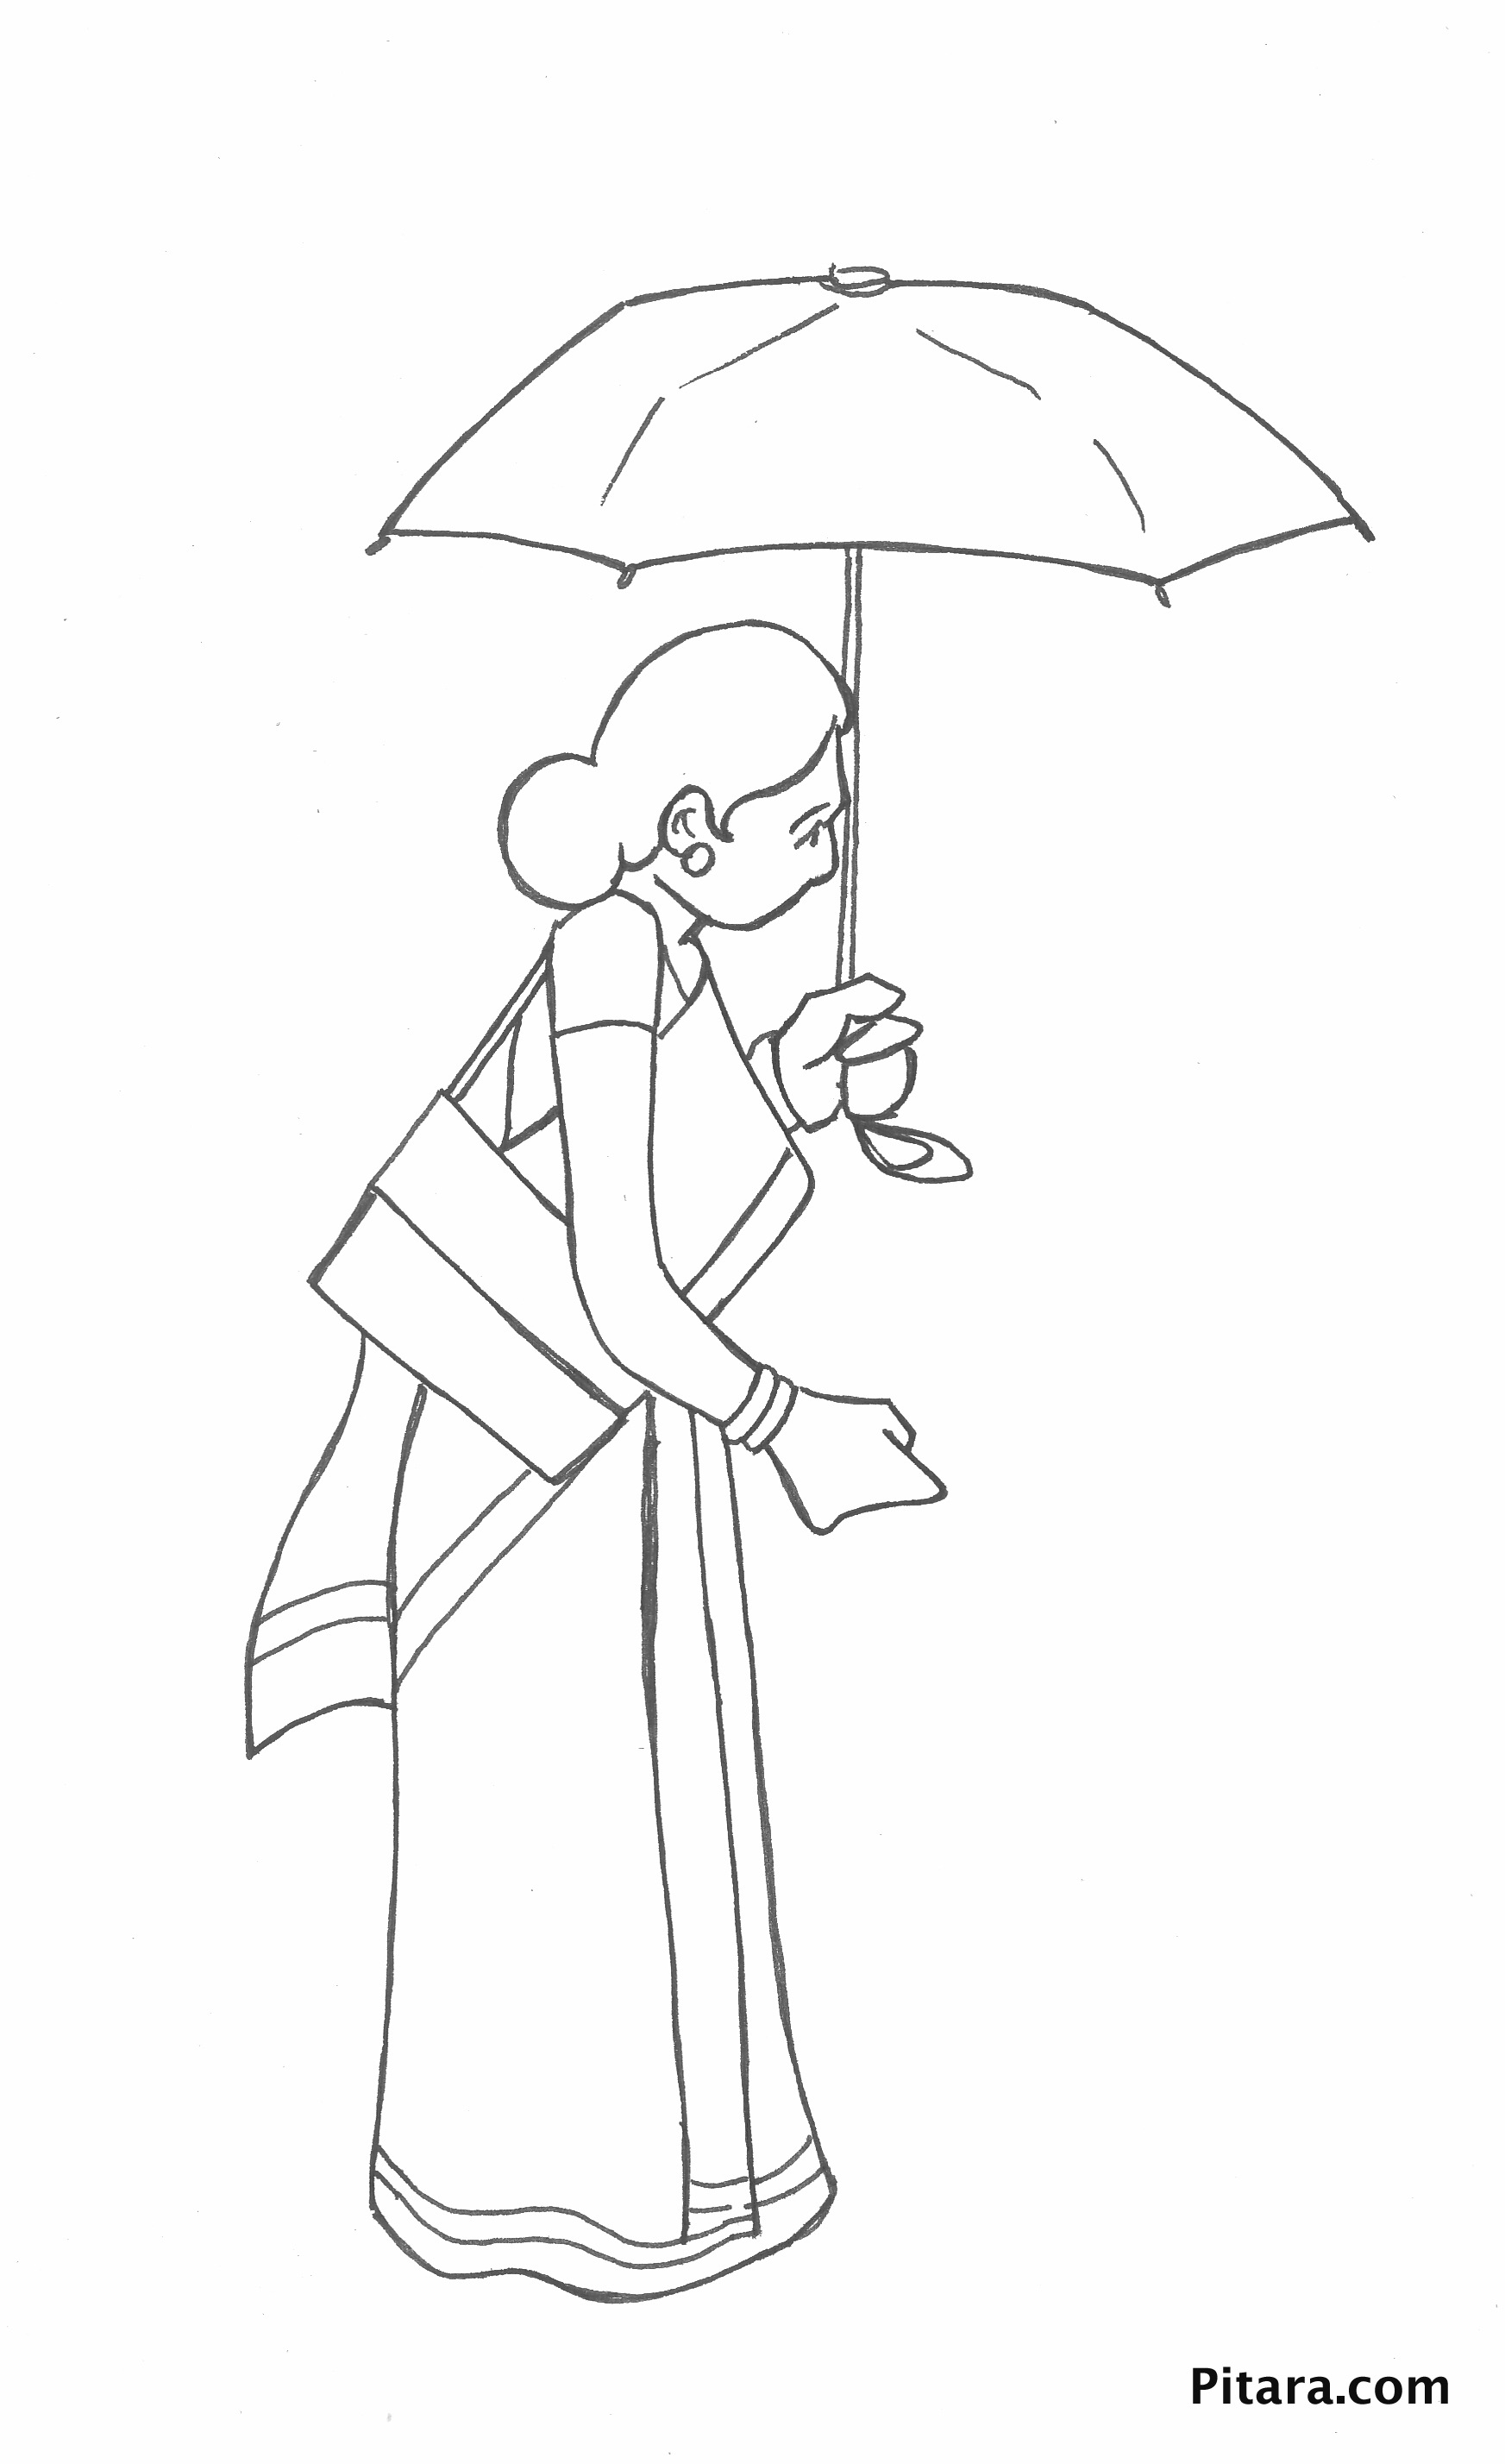 Woman With Umbrella Coloring Page